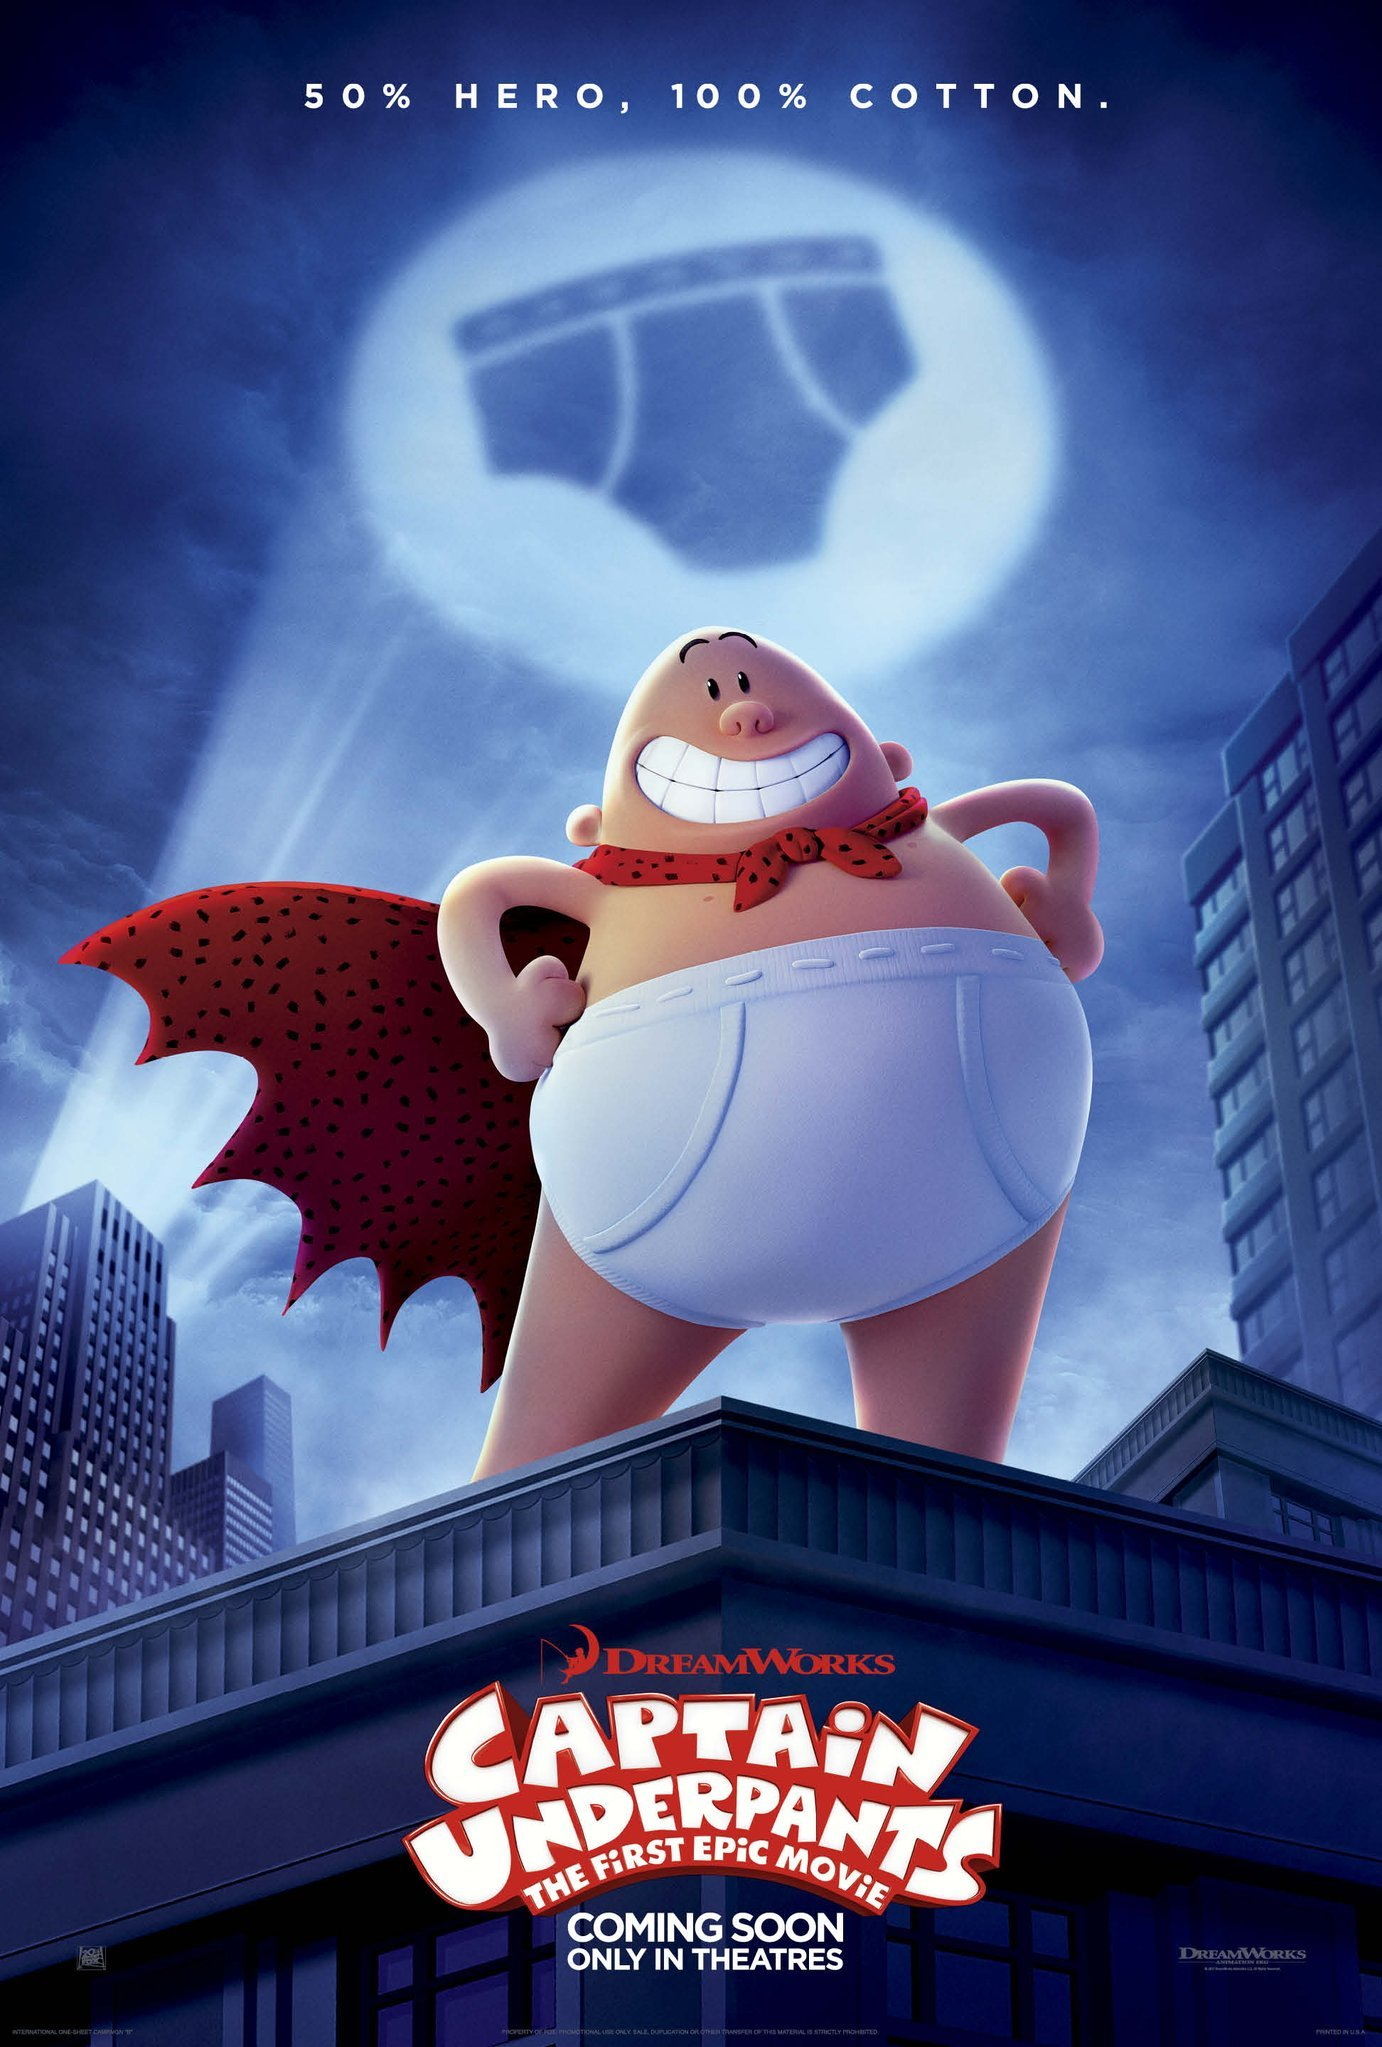 6646 - Captain Underpants: The First Epic Movie (2017) - Siêu Nhân Quần Sịp